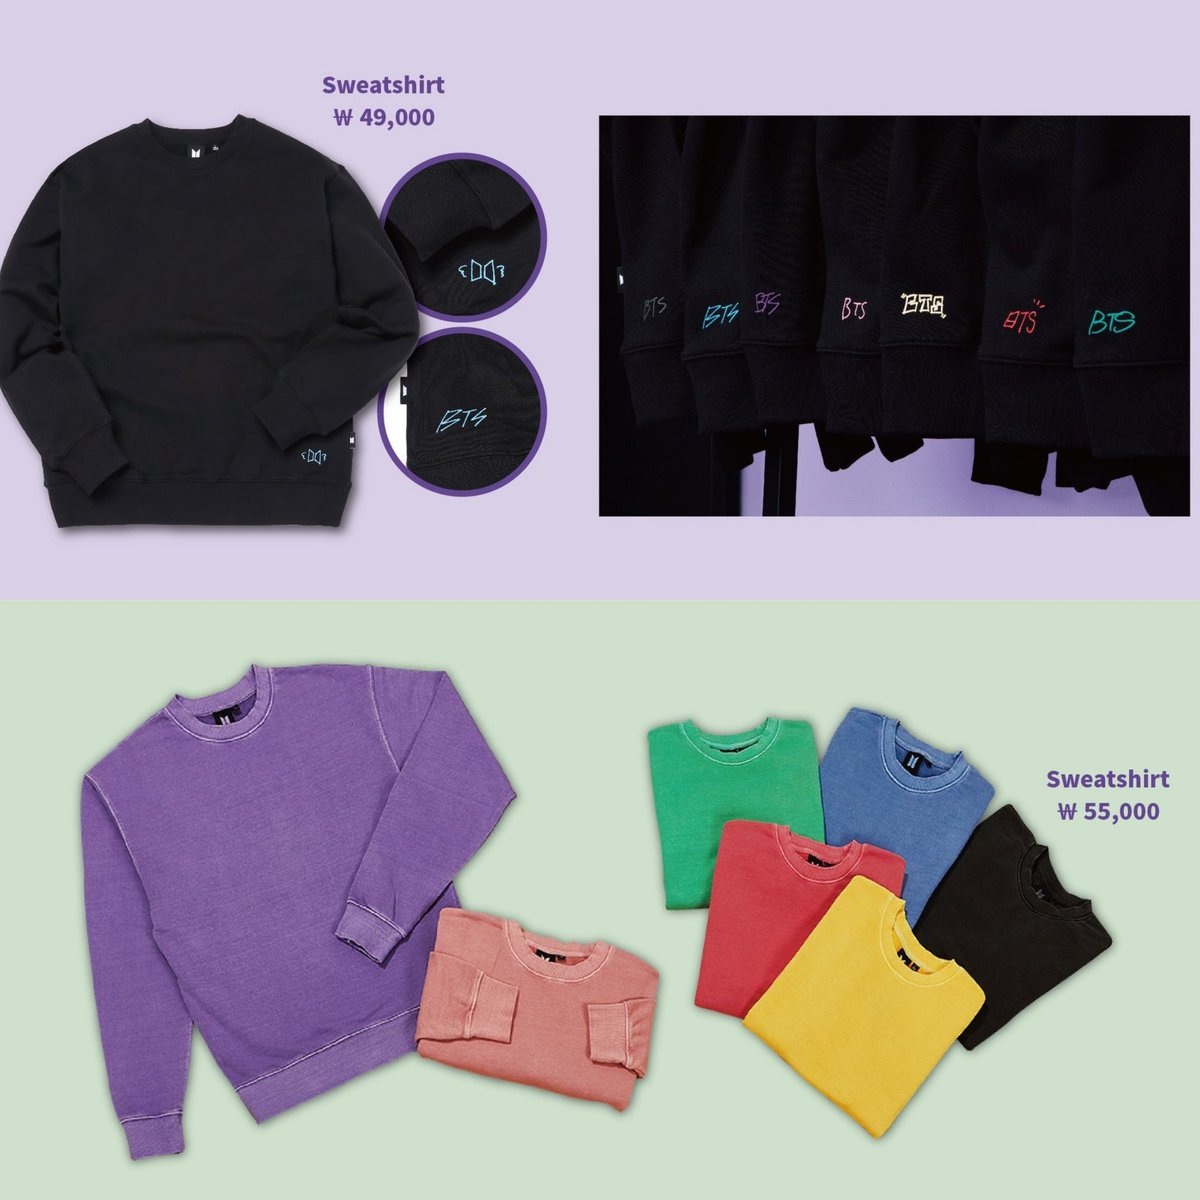 [PREORDER] #BTS_POPUP #SPACE_OF_BTS BASIC & LOGO Sweater. ❣  #DM to join a GO (PO until 28/2) - while stocks last (FPFS). 😻  7 Logos/Handwritings: 🏷 RM240/ea 7 Colors: 🏷 RM260/ea 📦 TBA  #BTSARMY #Malaysia #PreOrder  📣  🔁 Help RT @BTStrading_MY